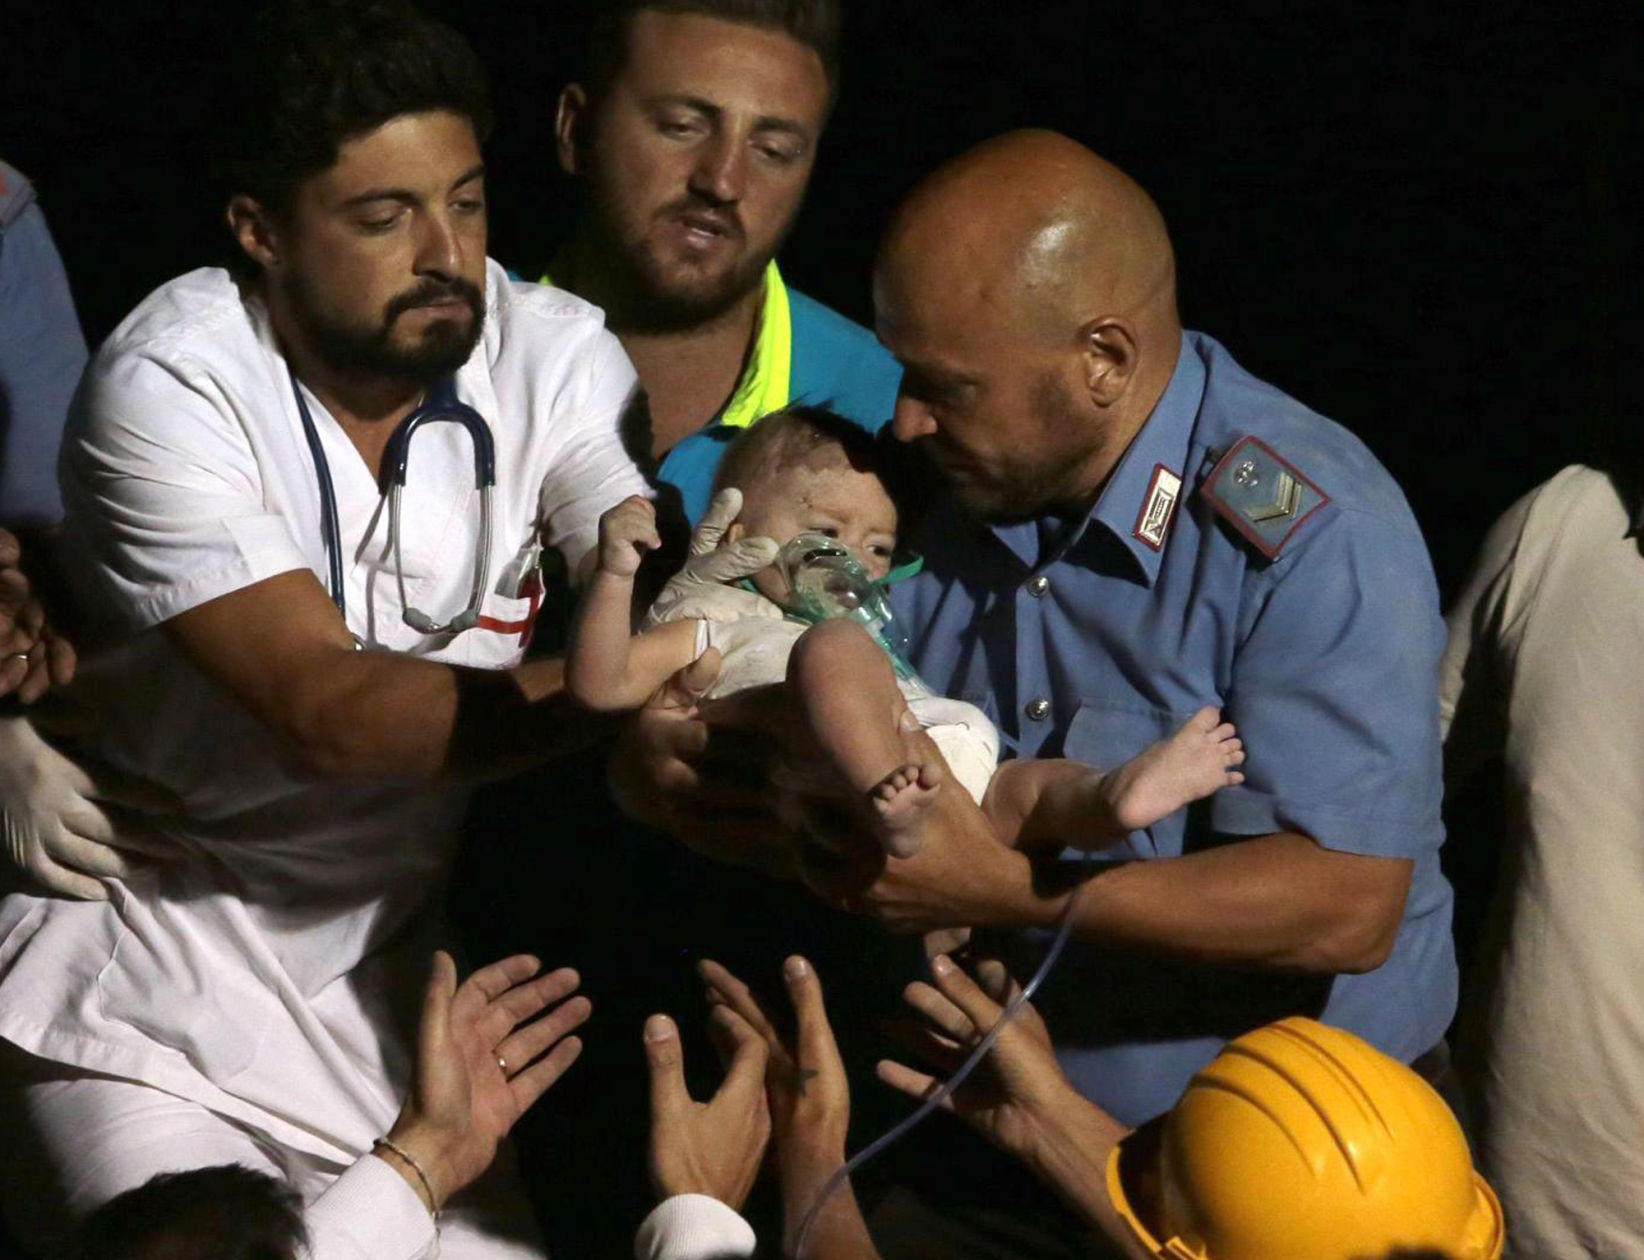 Baby rescued after deadly natural disaster